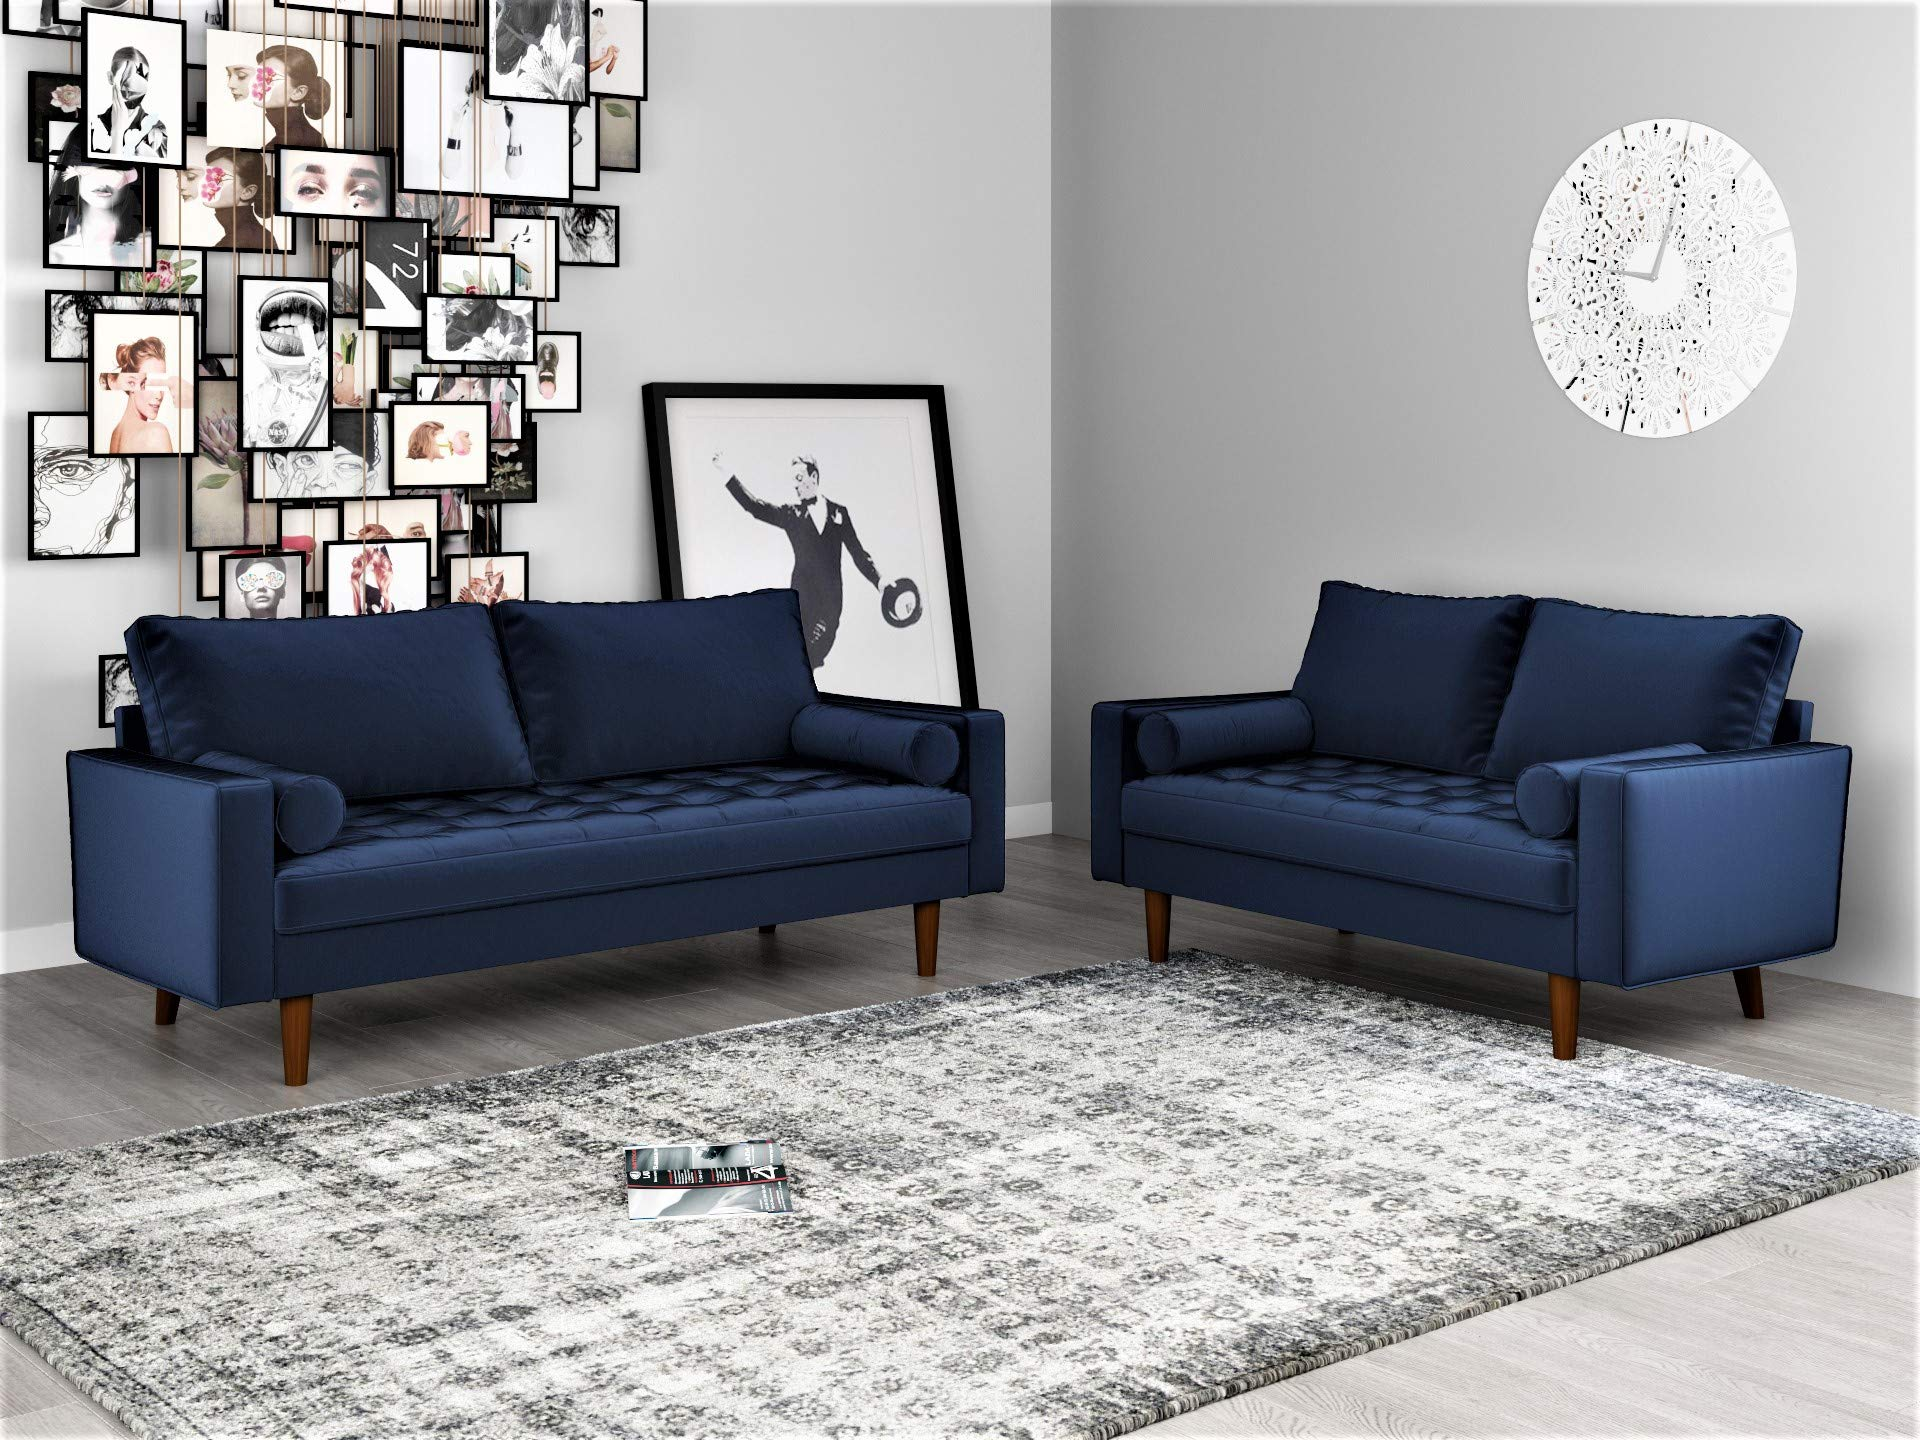 Container Furniture Direct Mid Century Modern Velvet Upholstered Button Tufted Living Room Sofa, 2 Piece Set, Space Blue by Container Furniture Direct